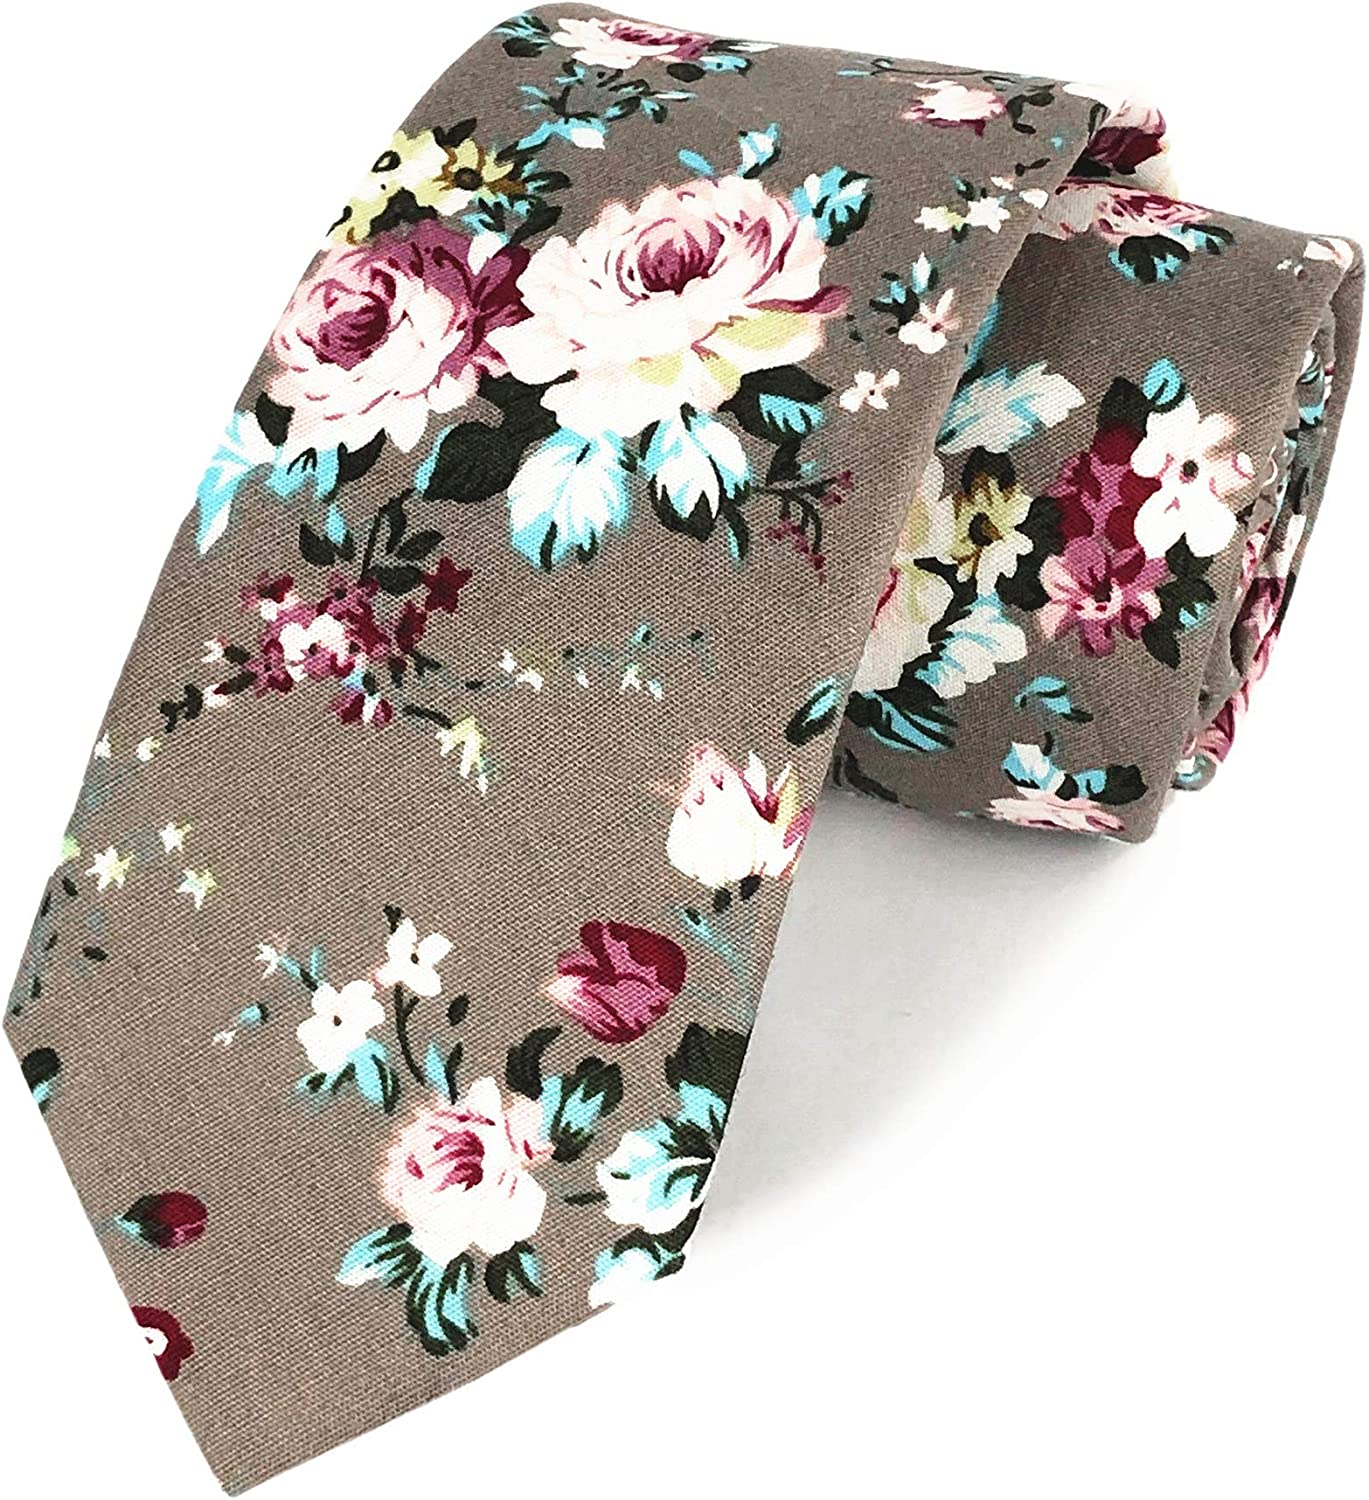 Men's Cotton Printed Floral Don't miss the campaign Novelty Ties Direct sale of manufacturer Necktie Skinny Wedding